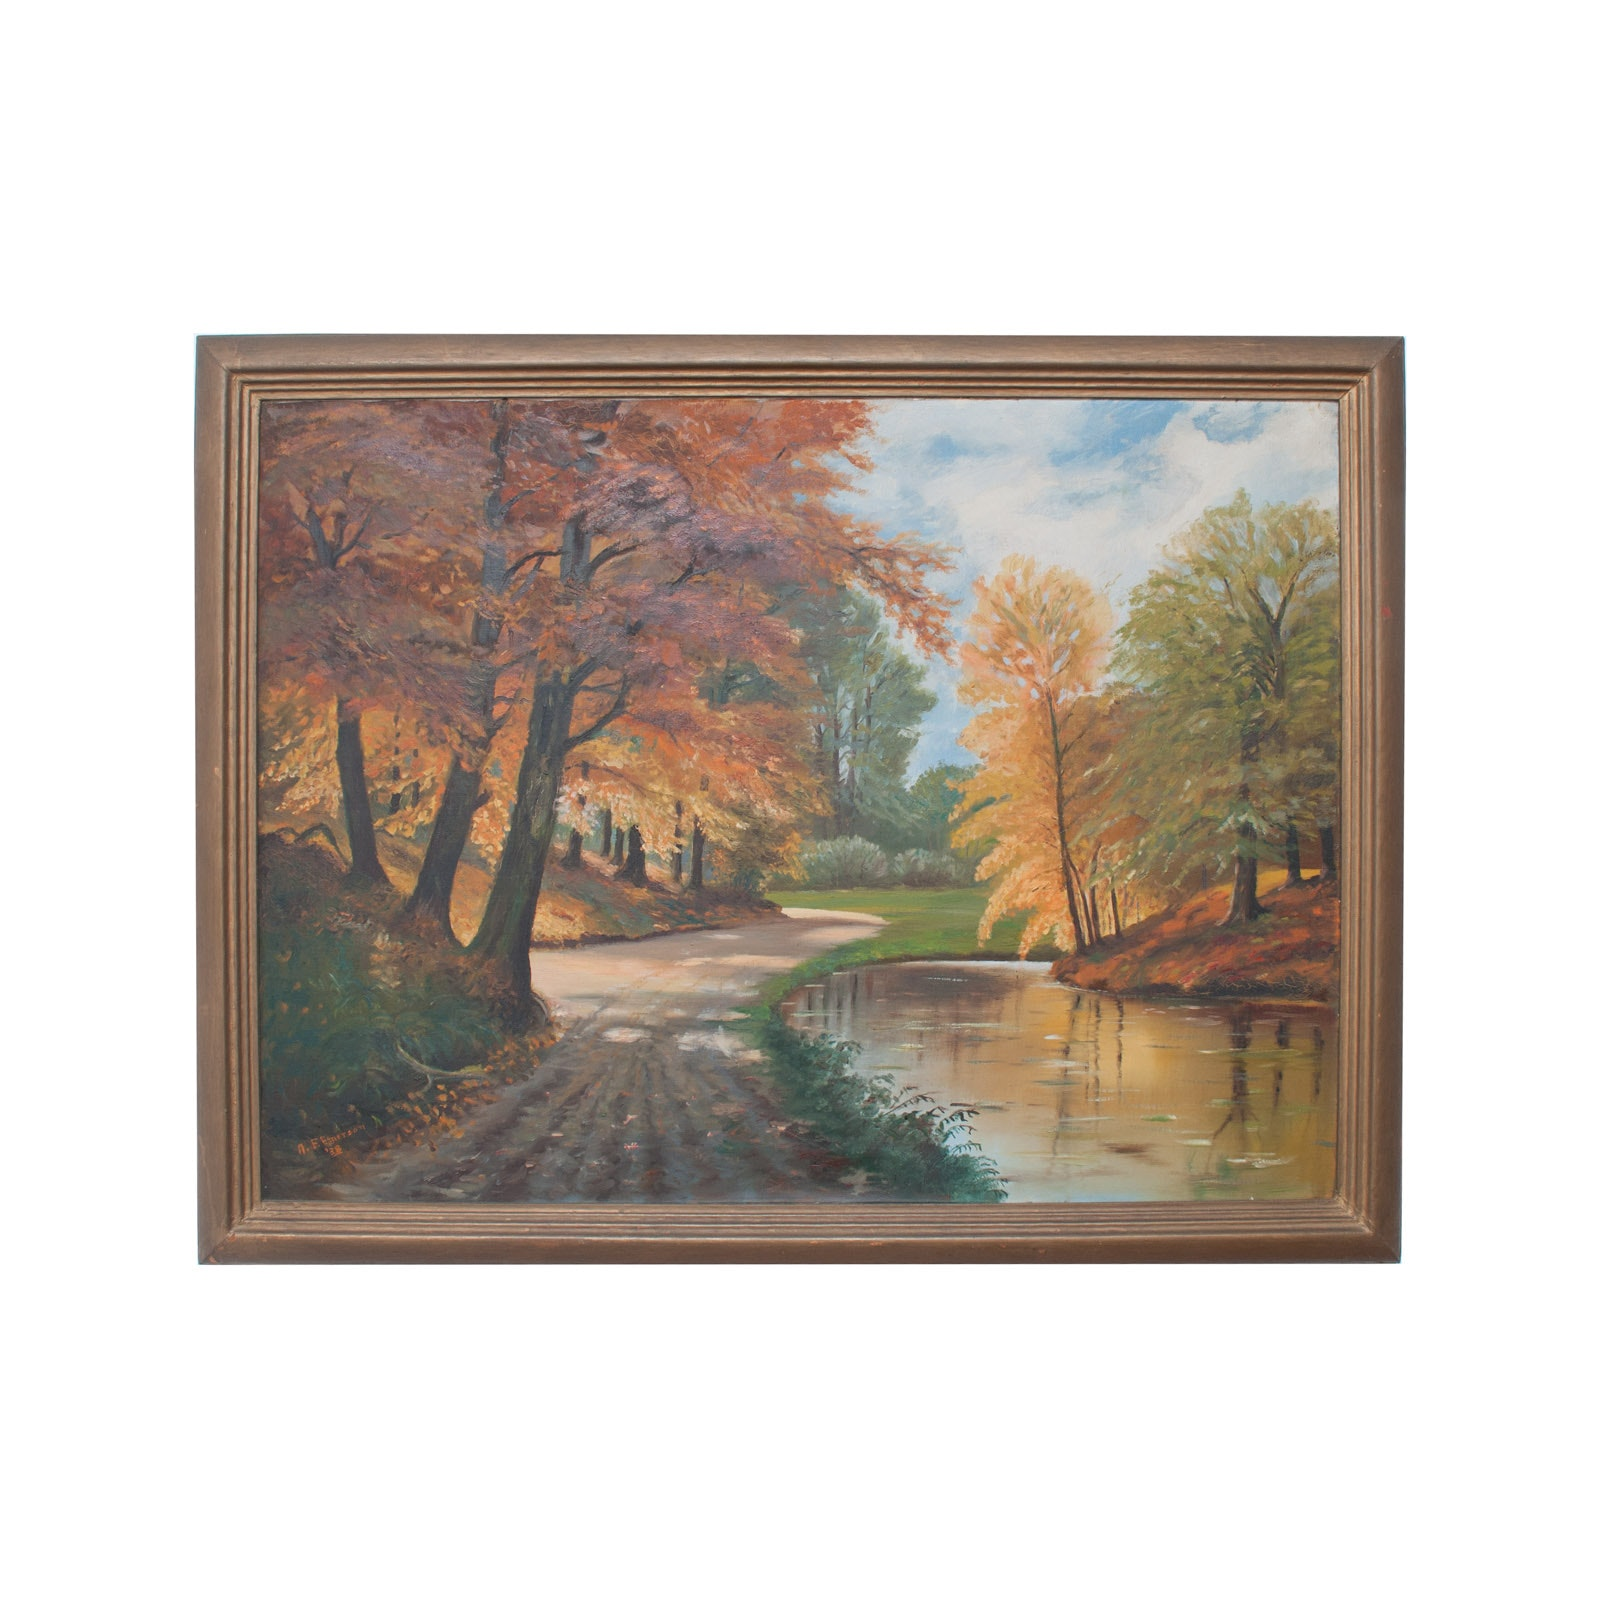 A.F. Emerson 1938 Original Oil Painting on Canvas of Fall Landscape